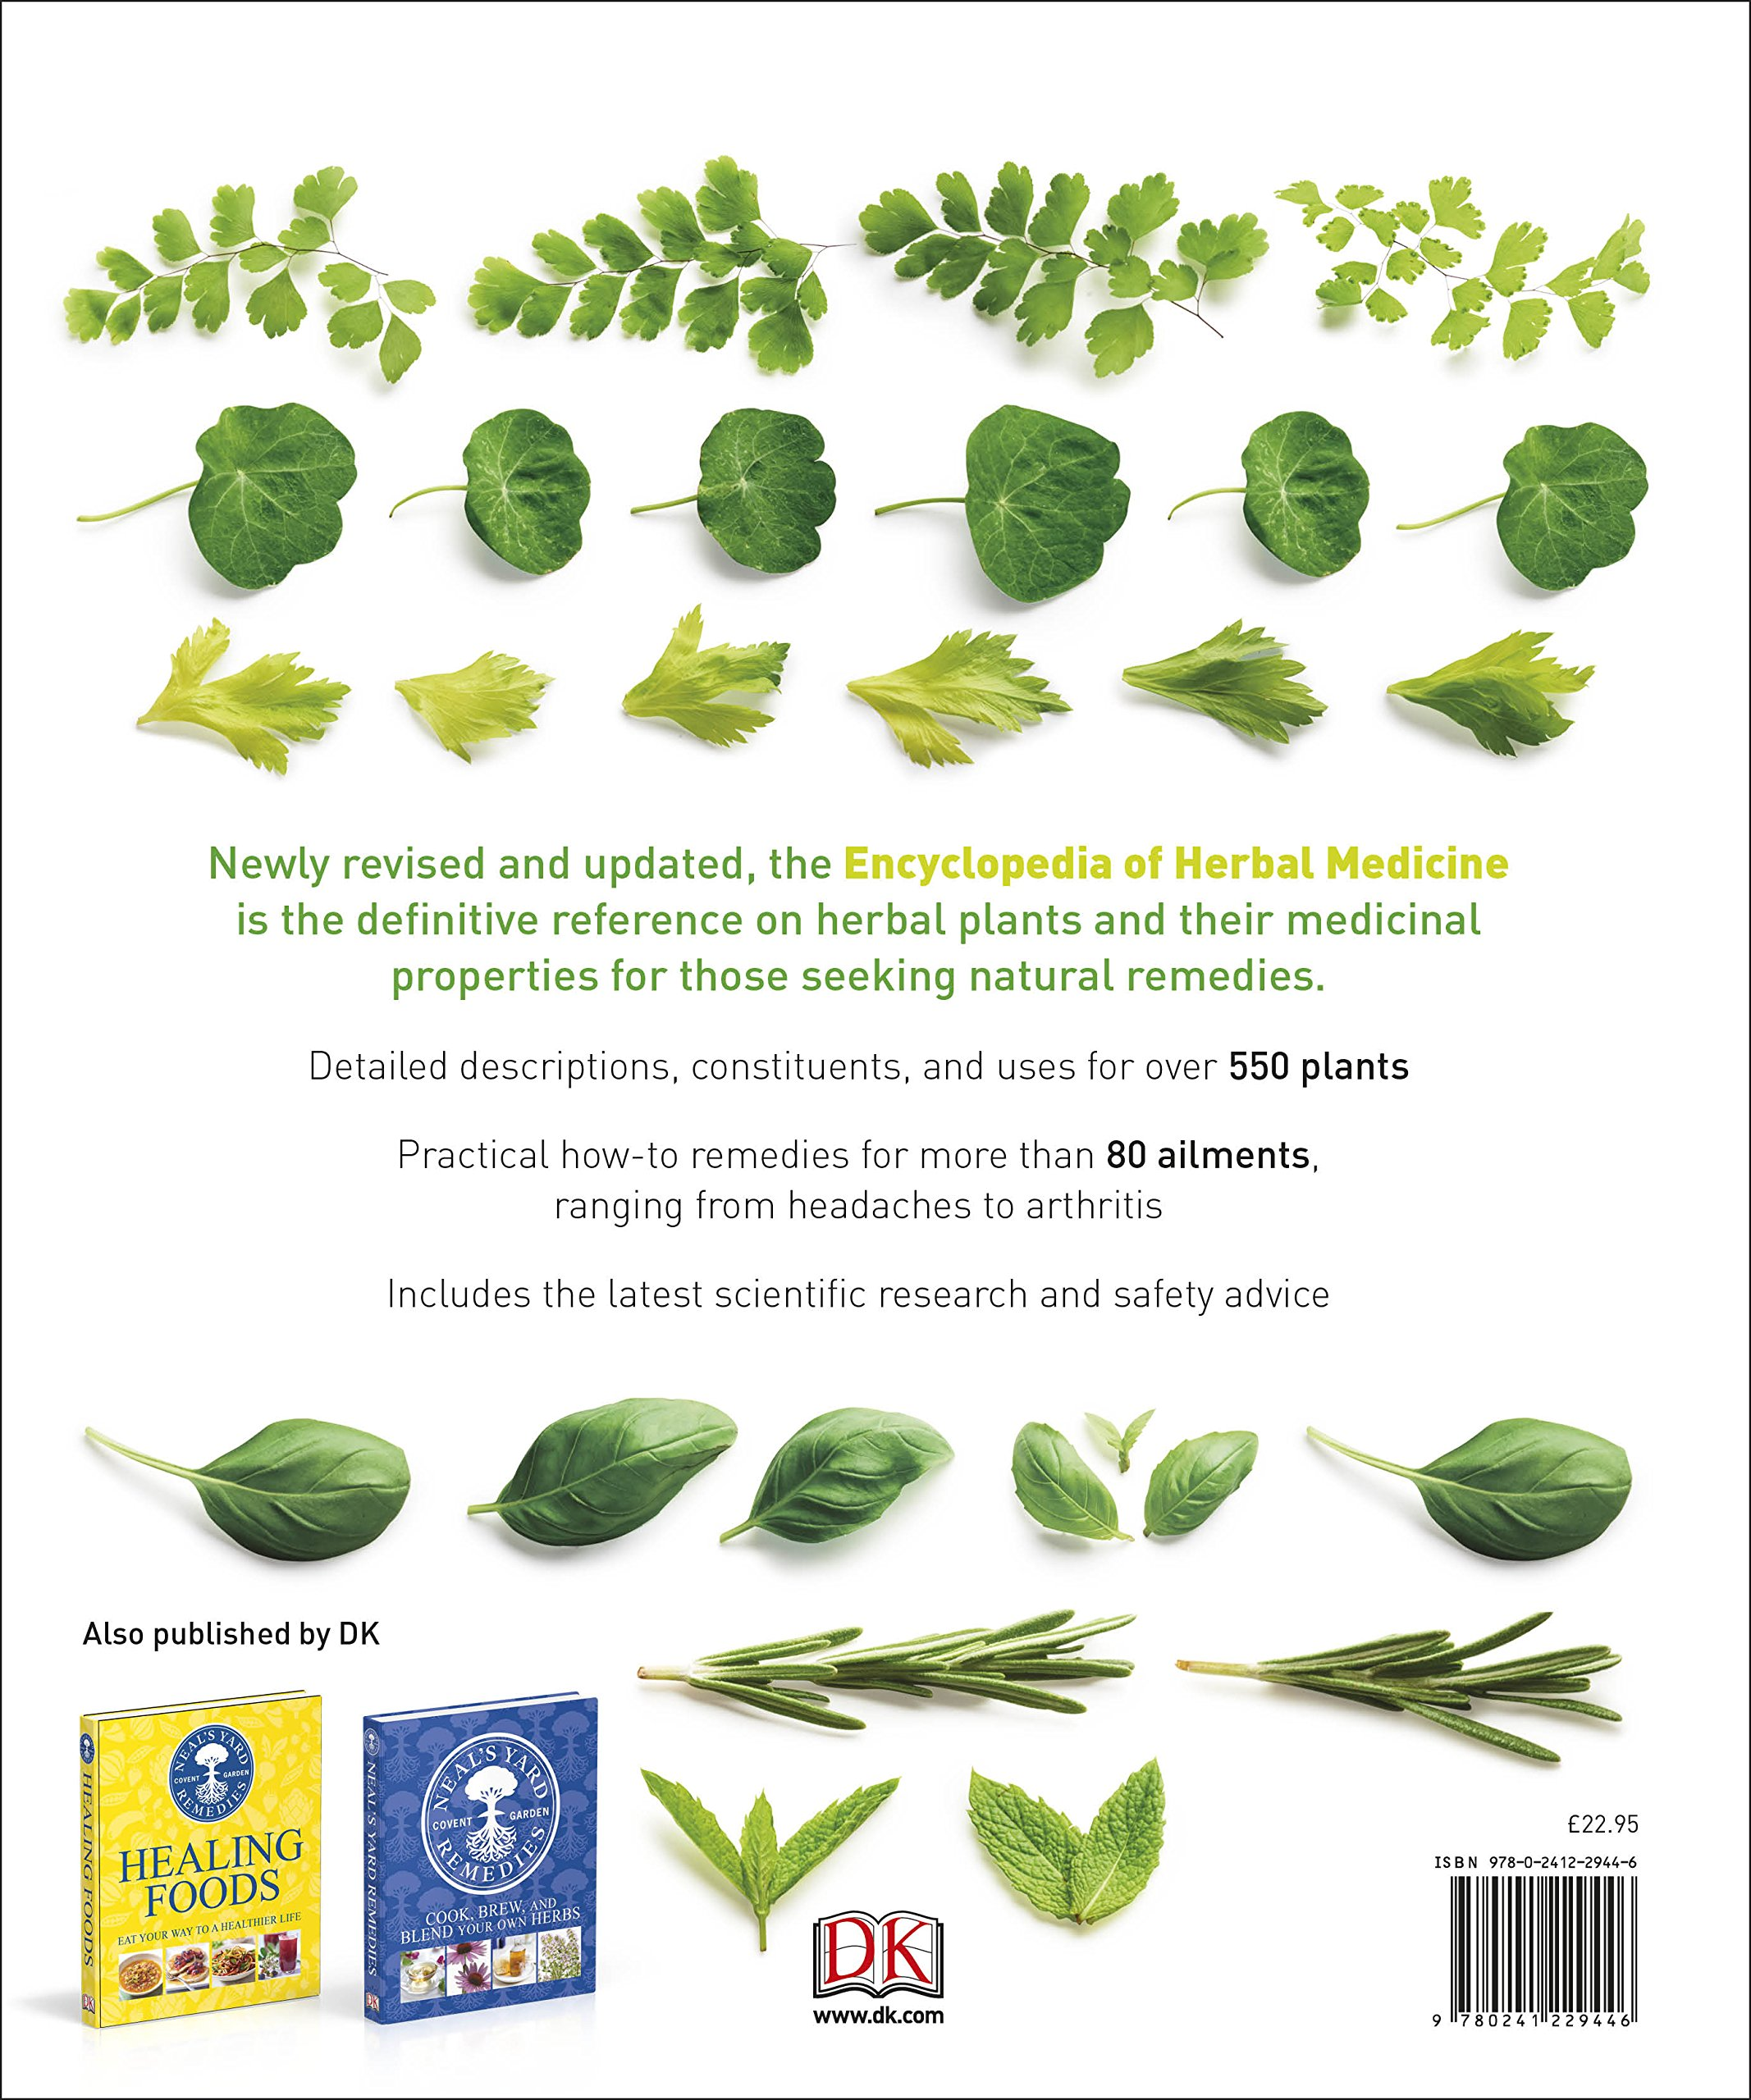 British herbal medicine association - Encyclopedia Of Herbal Medicine 550 Herbs And Remedies For Common Ailments